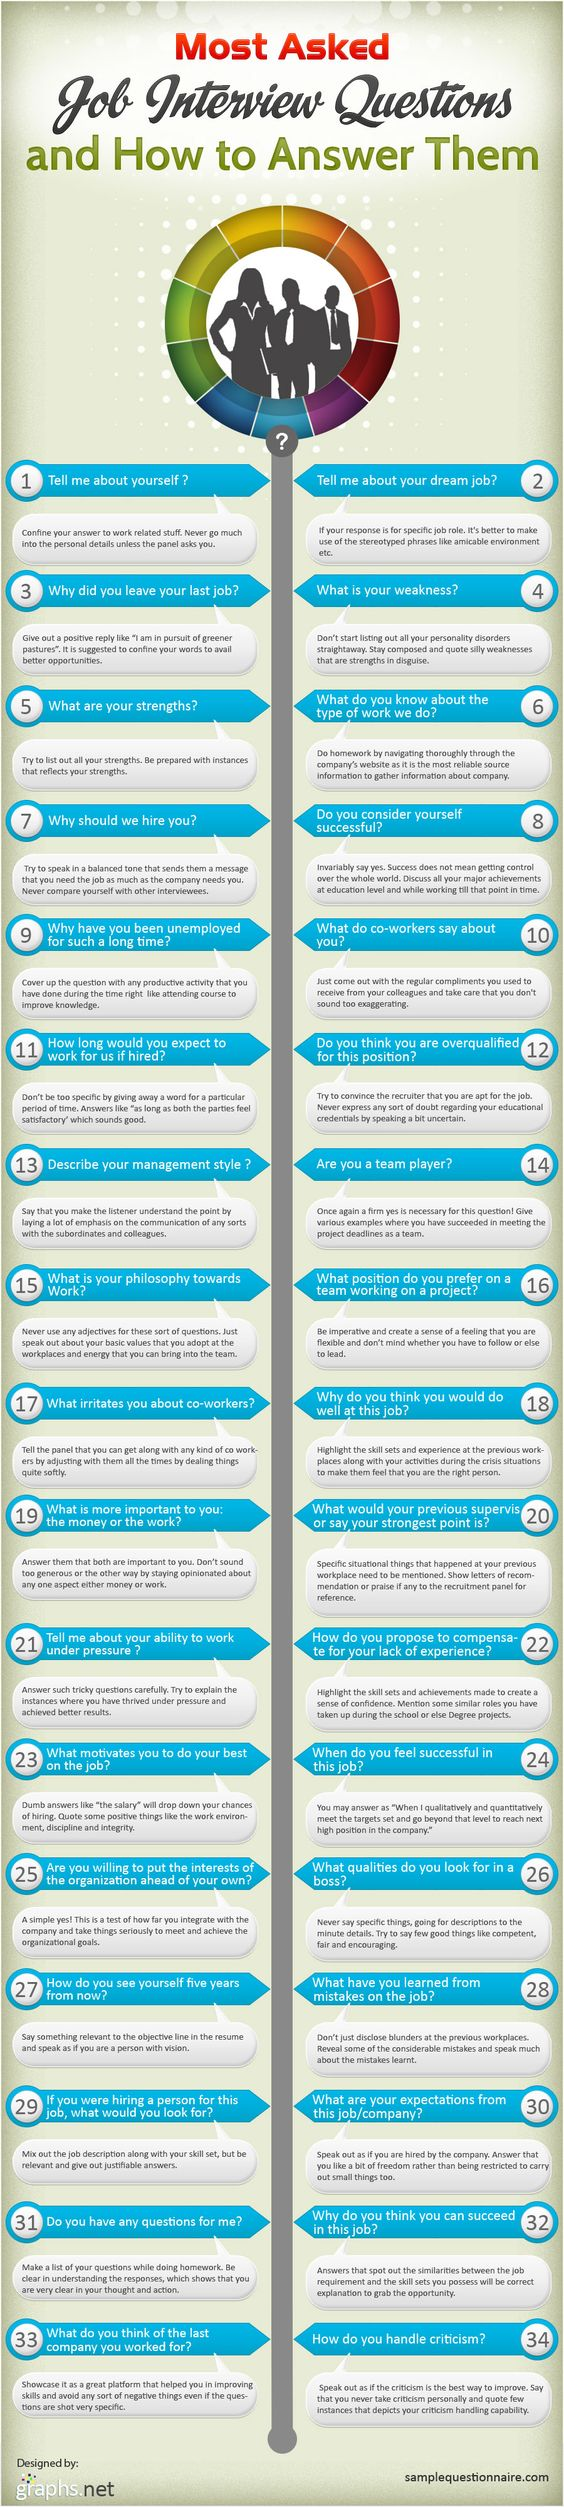 most asked job interview questions how to answer them most asked job interview questions ur it s great to be prepared for your future interviews this gives you a good idea of what type of questions could